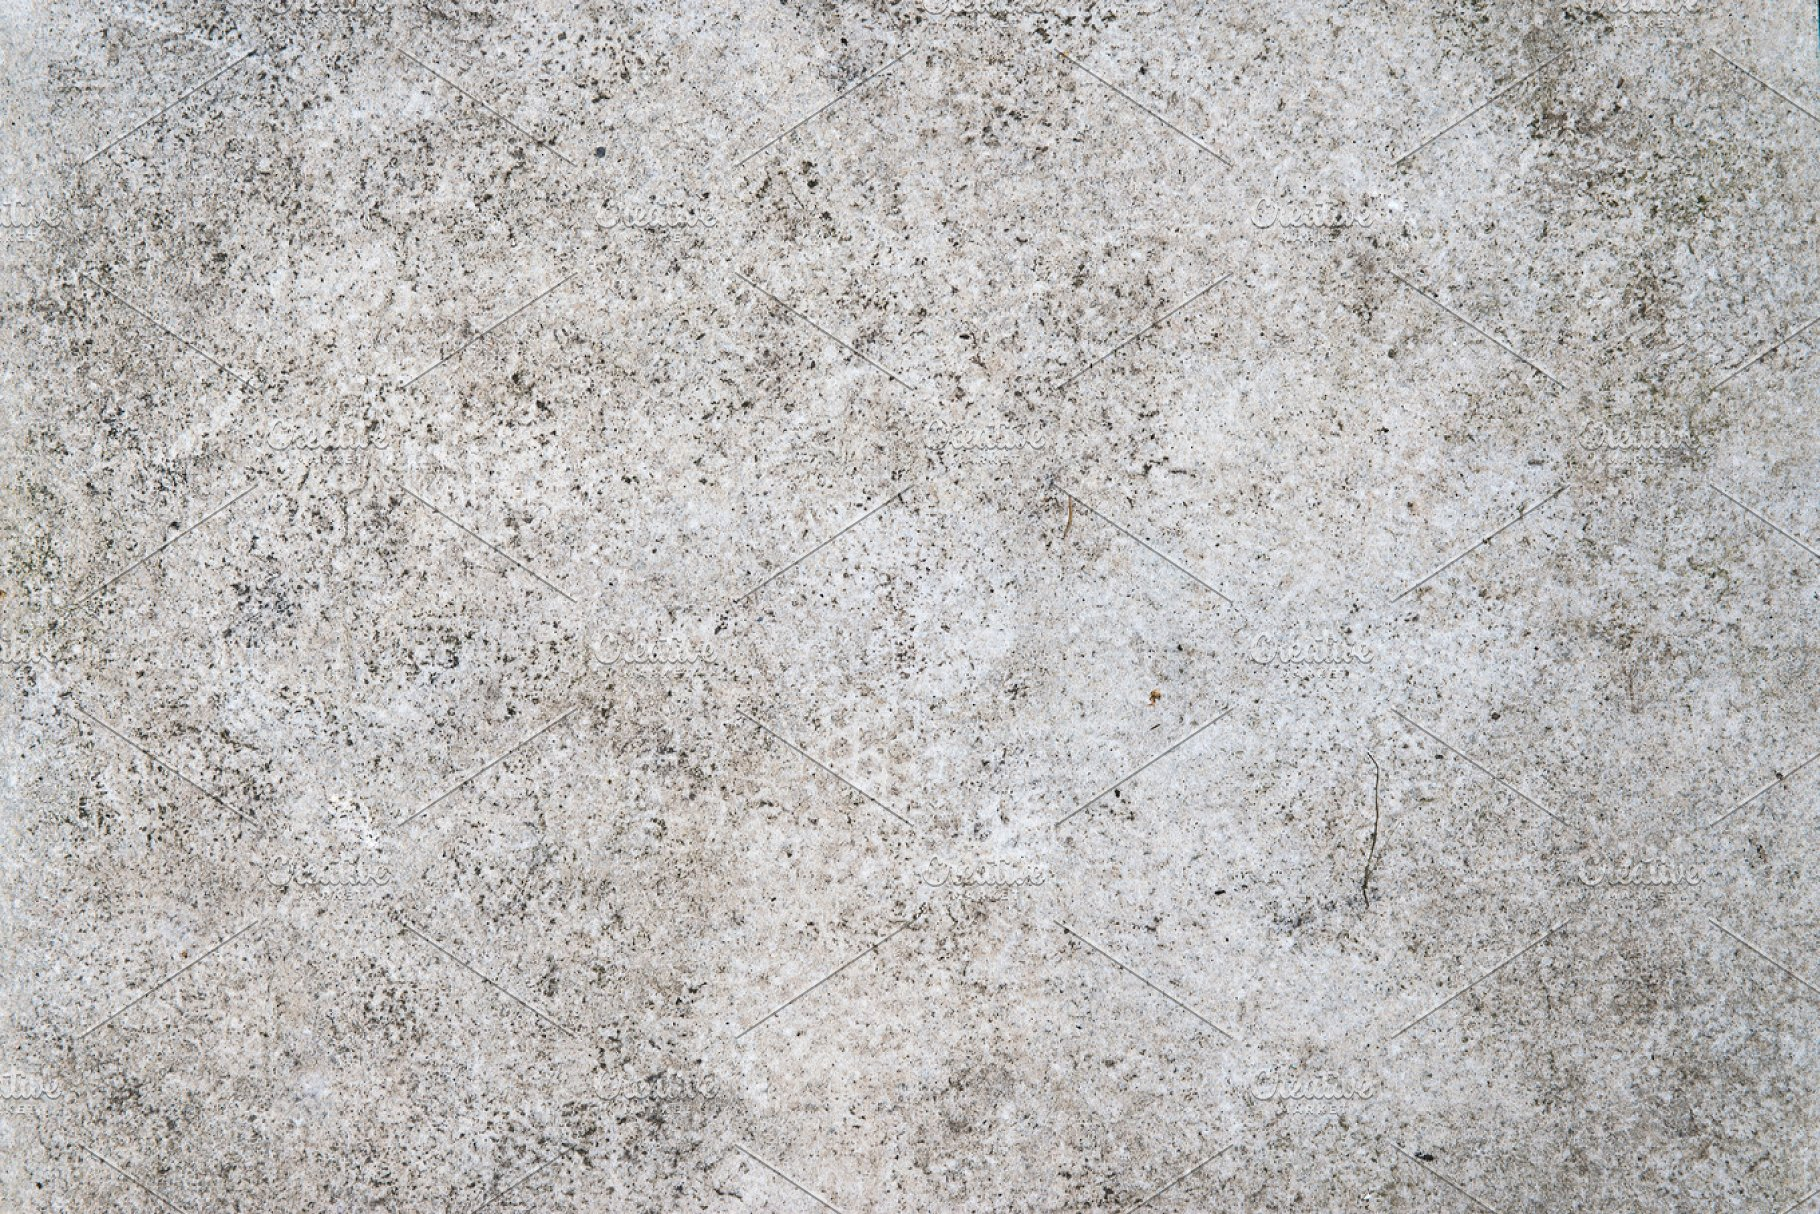 White cement - Grunge texture | High-Quality Stock Photos ~ Creative Market